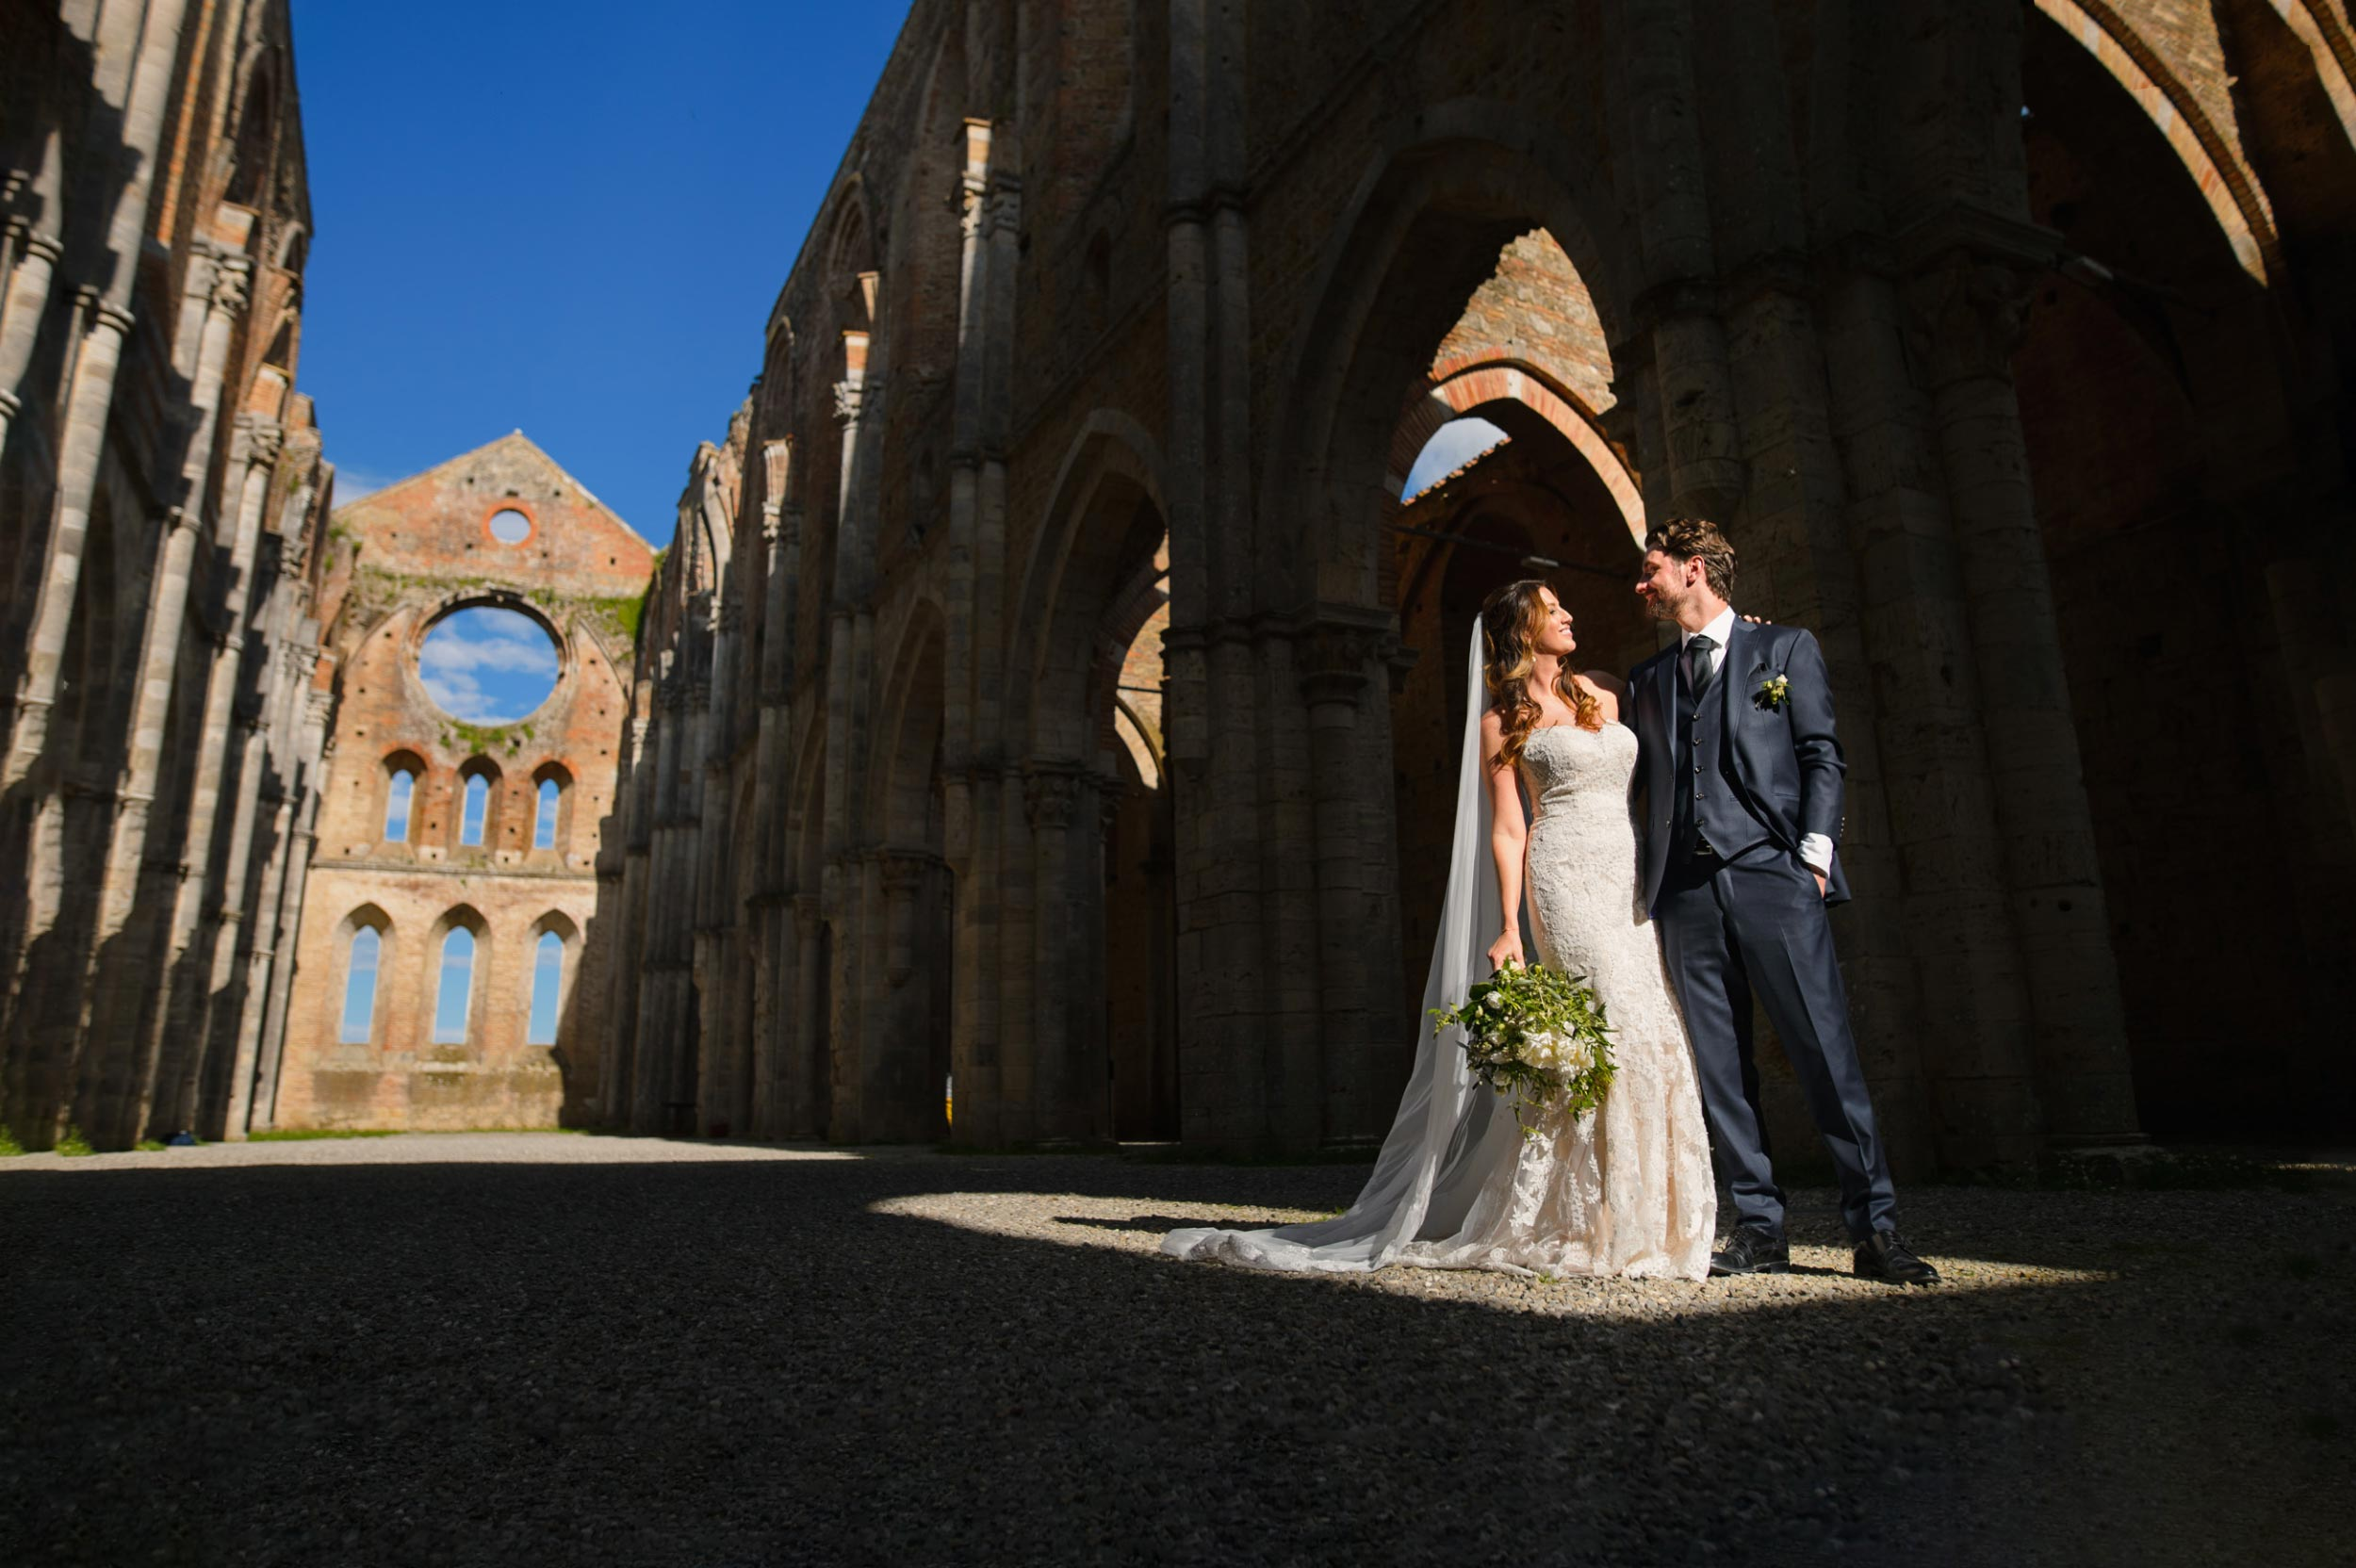 Destination Wedding in San Galgano, Tuscany - Alessia Bruchi Fotografia